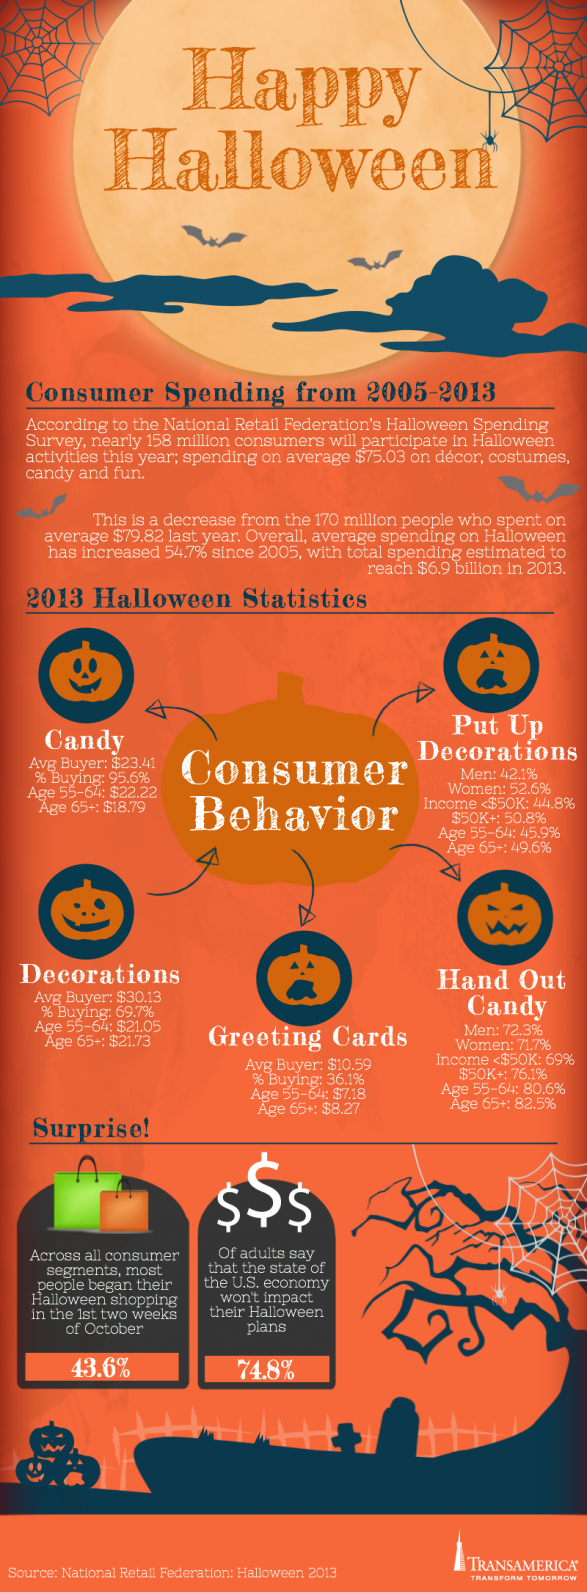 Halloween Consumer Spending from 2005 - 2013